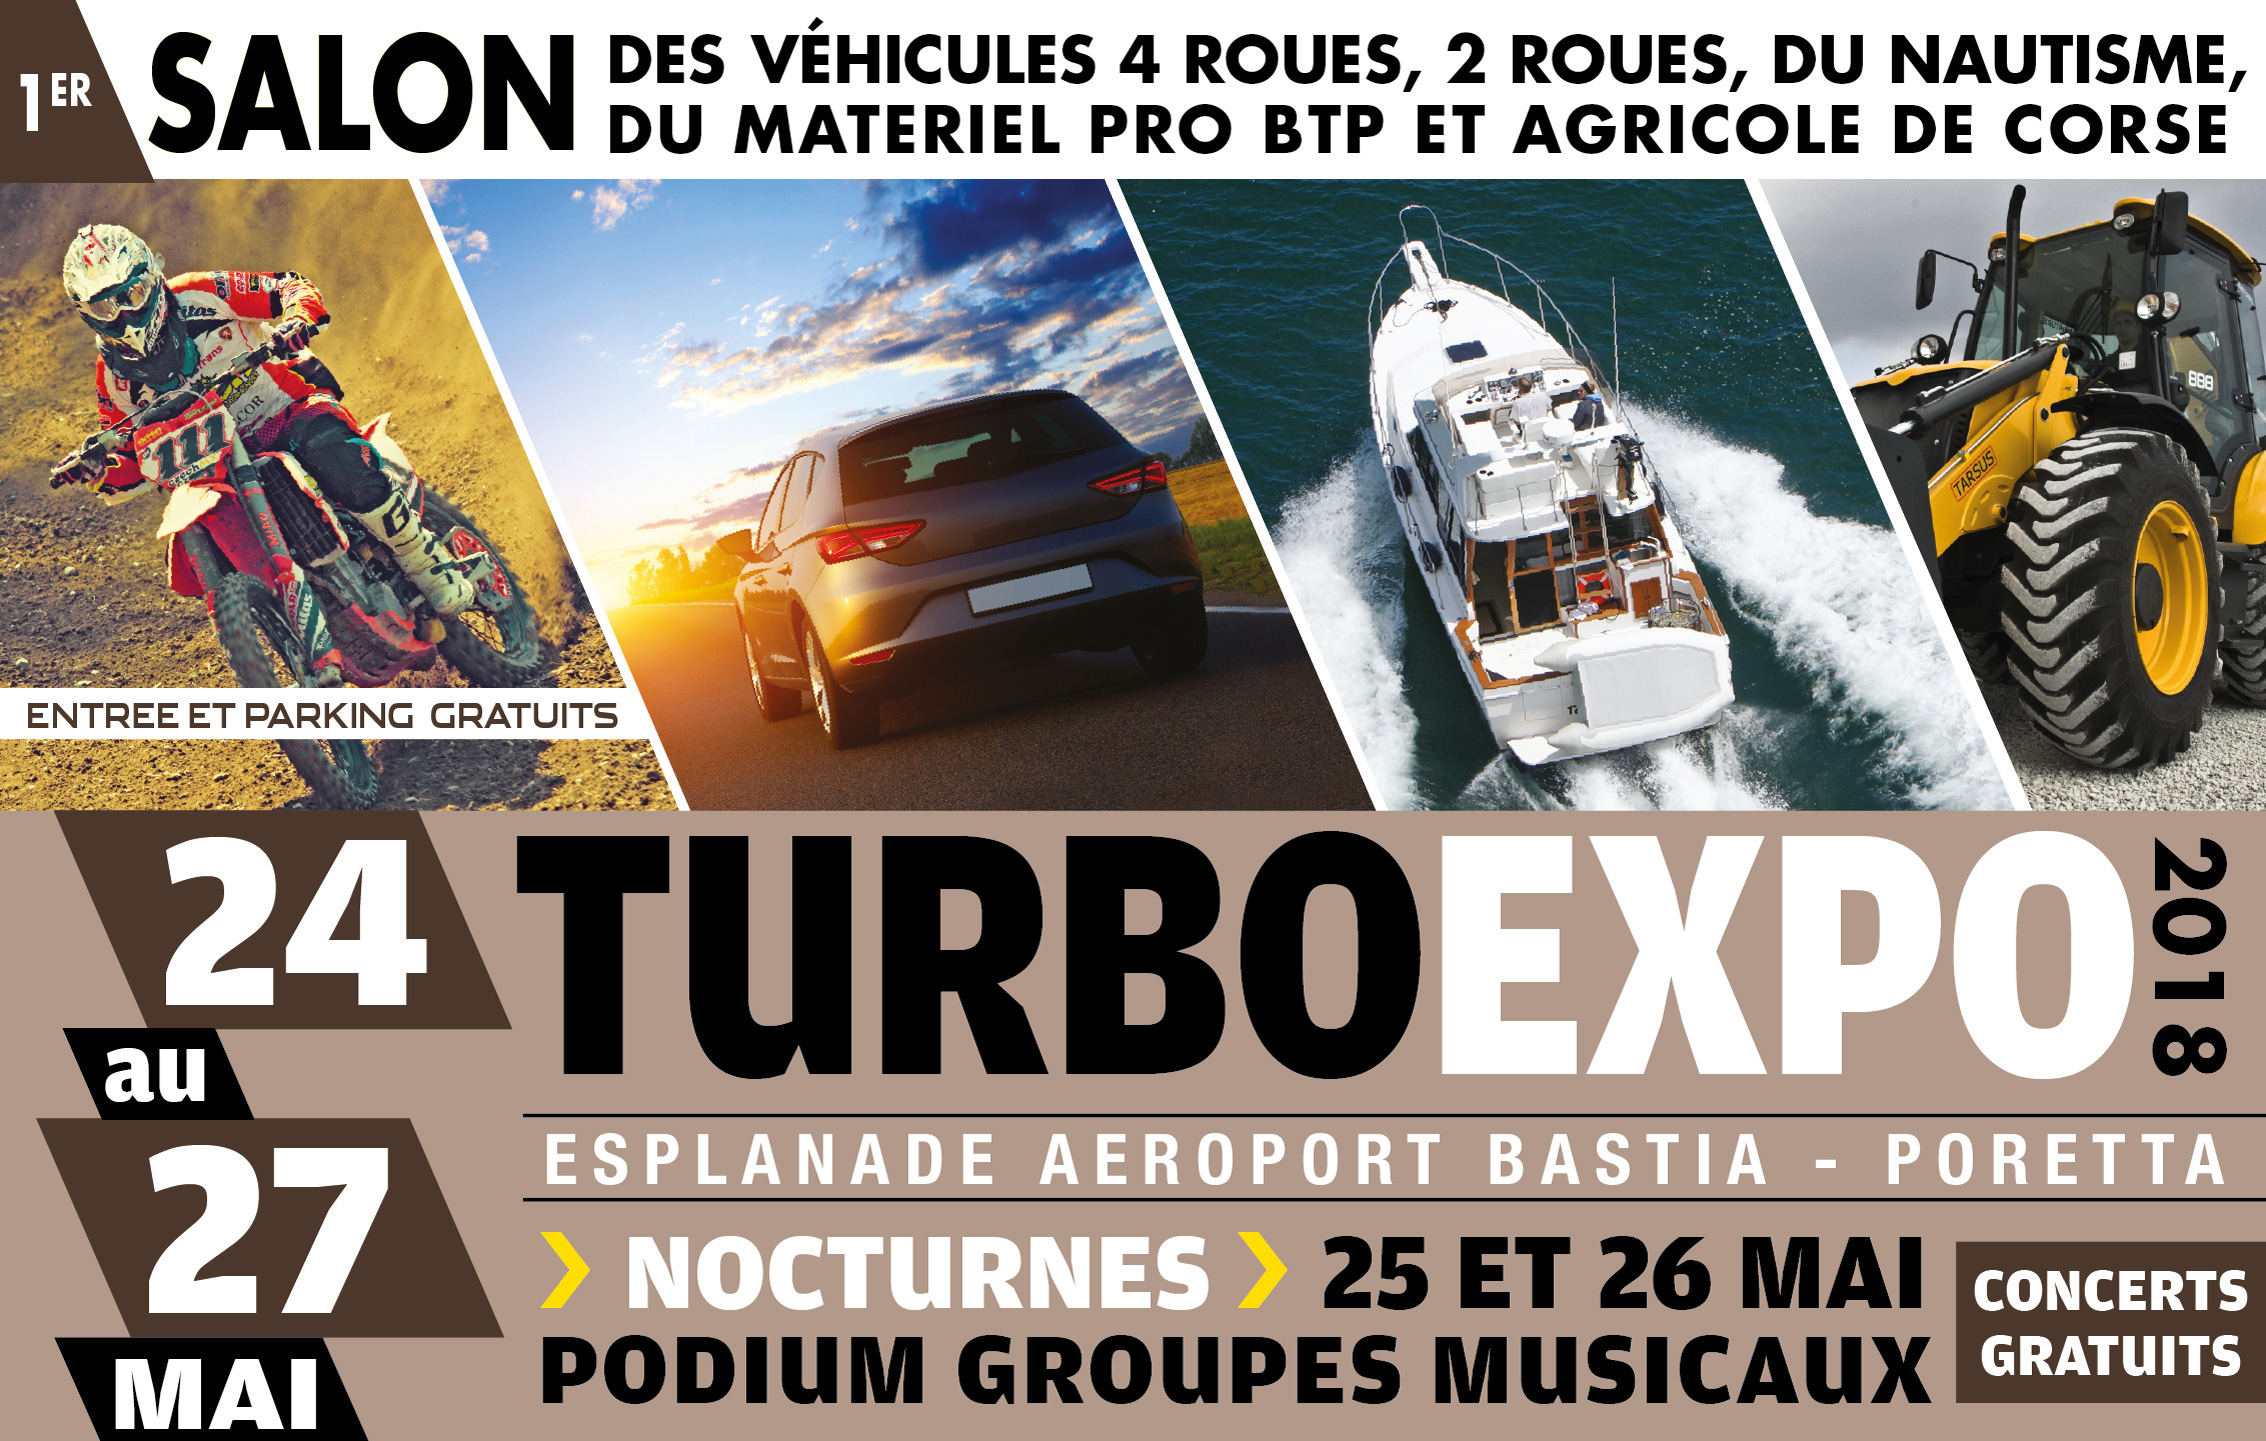 Turbo expo 2018 : 4 jours de salon à Poretta !